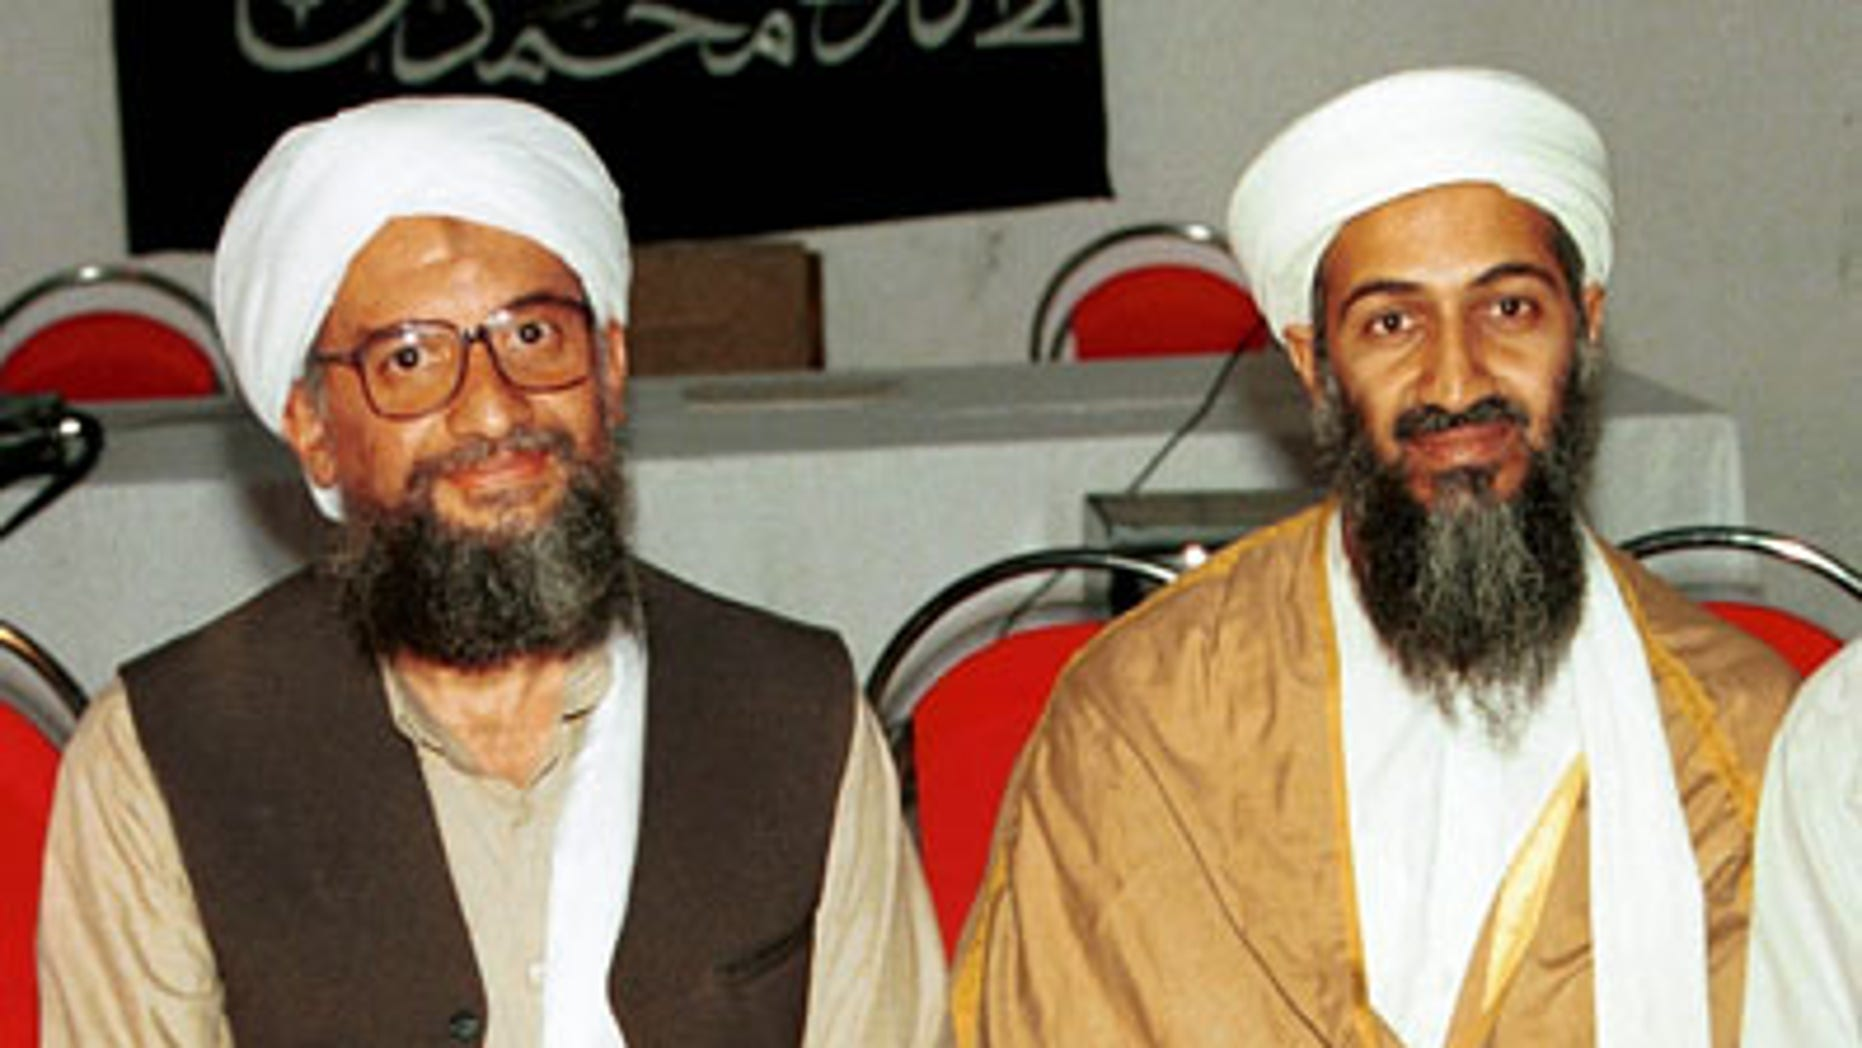 In this 1998 file photo made available Friday, March 19, 2004, Ayman al-Zawahri, left, poses for a photograph with Osama bin Laden, right, in Khost, Afghanistan. Al-Qaida has selected its longtime No. 2, Ayman al-Zawahri, to succeed Osama bin Laden following last month's U.S. commando raid that killed the terror leader, according to a statement posted Thursday, June 16, 2011 on a website affiliated with the network.